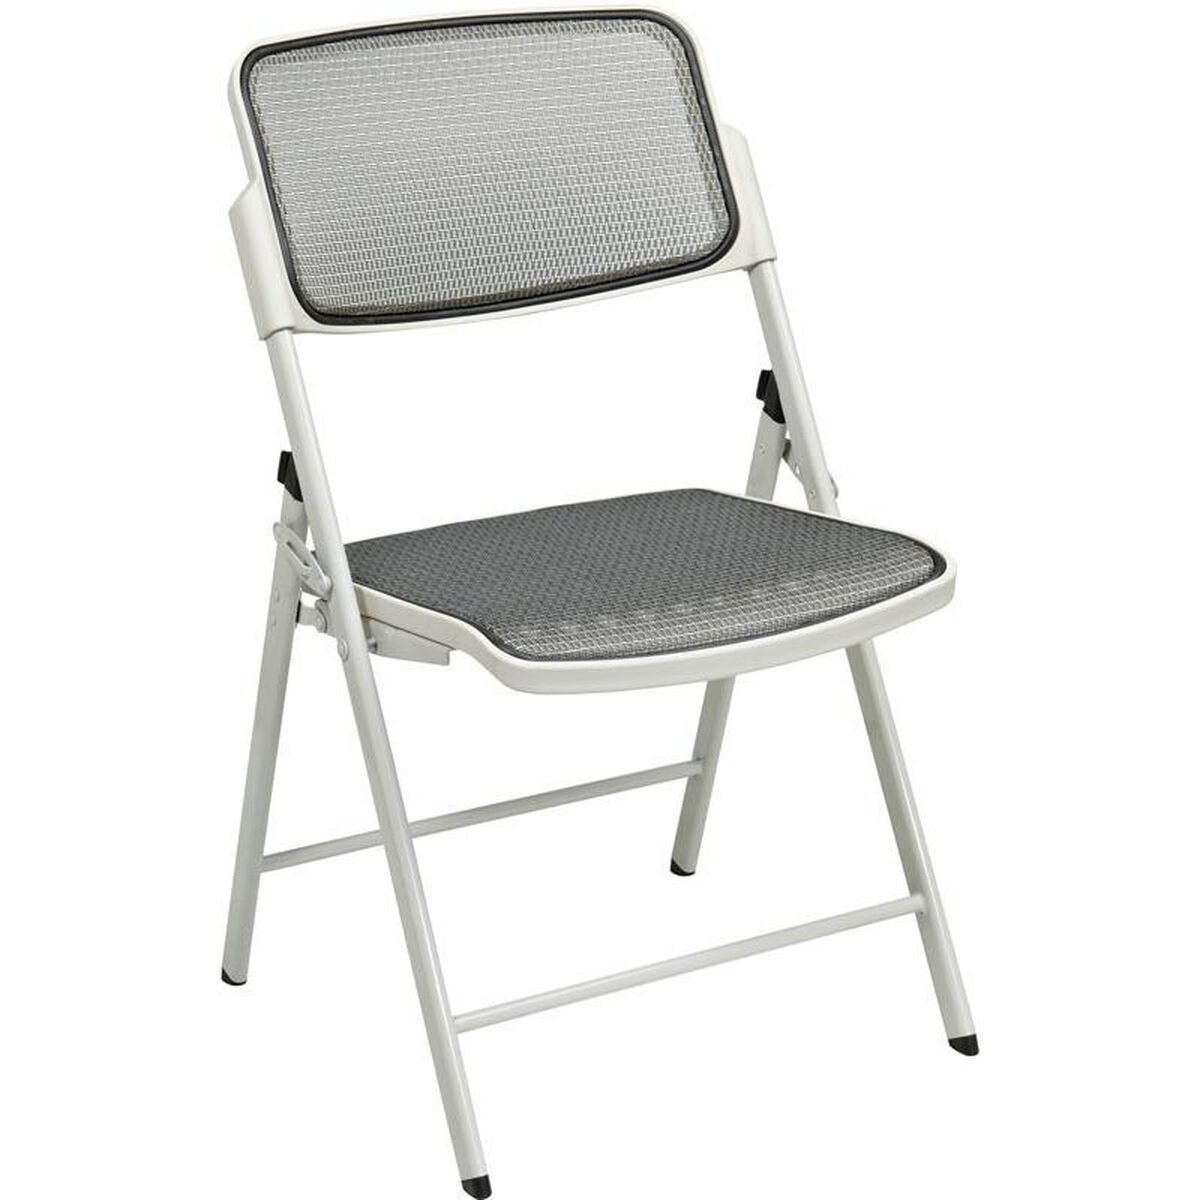 Set Of 2 Pro Line Ii Folding Chair 81108